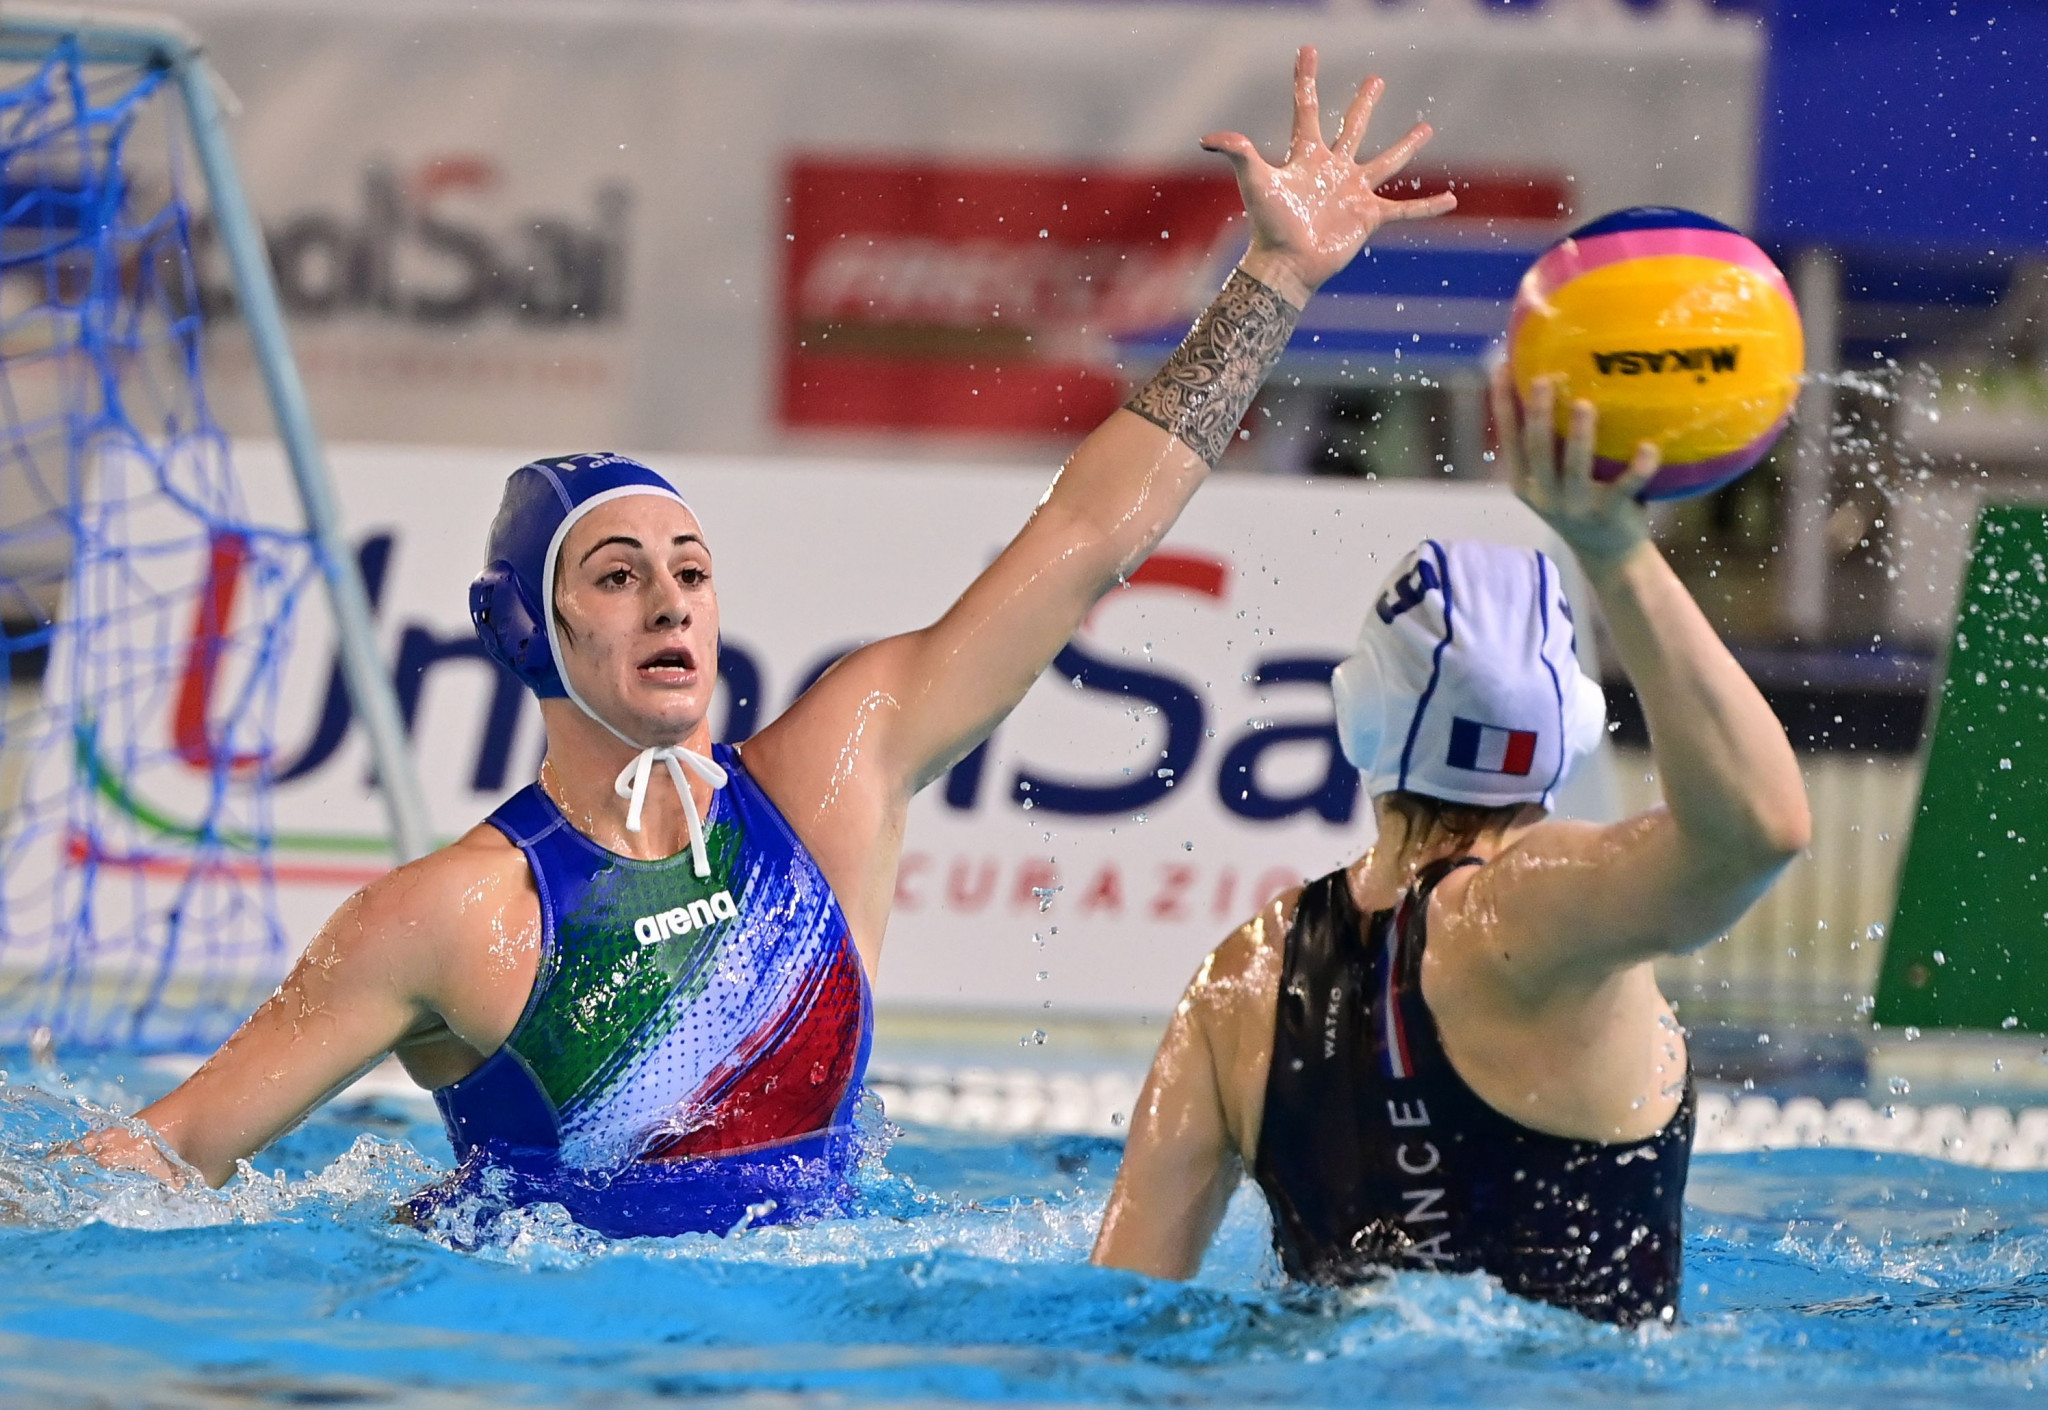 Italy and France pull out of Water Polo World League games over COVID-19 restrictions